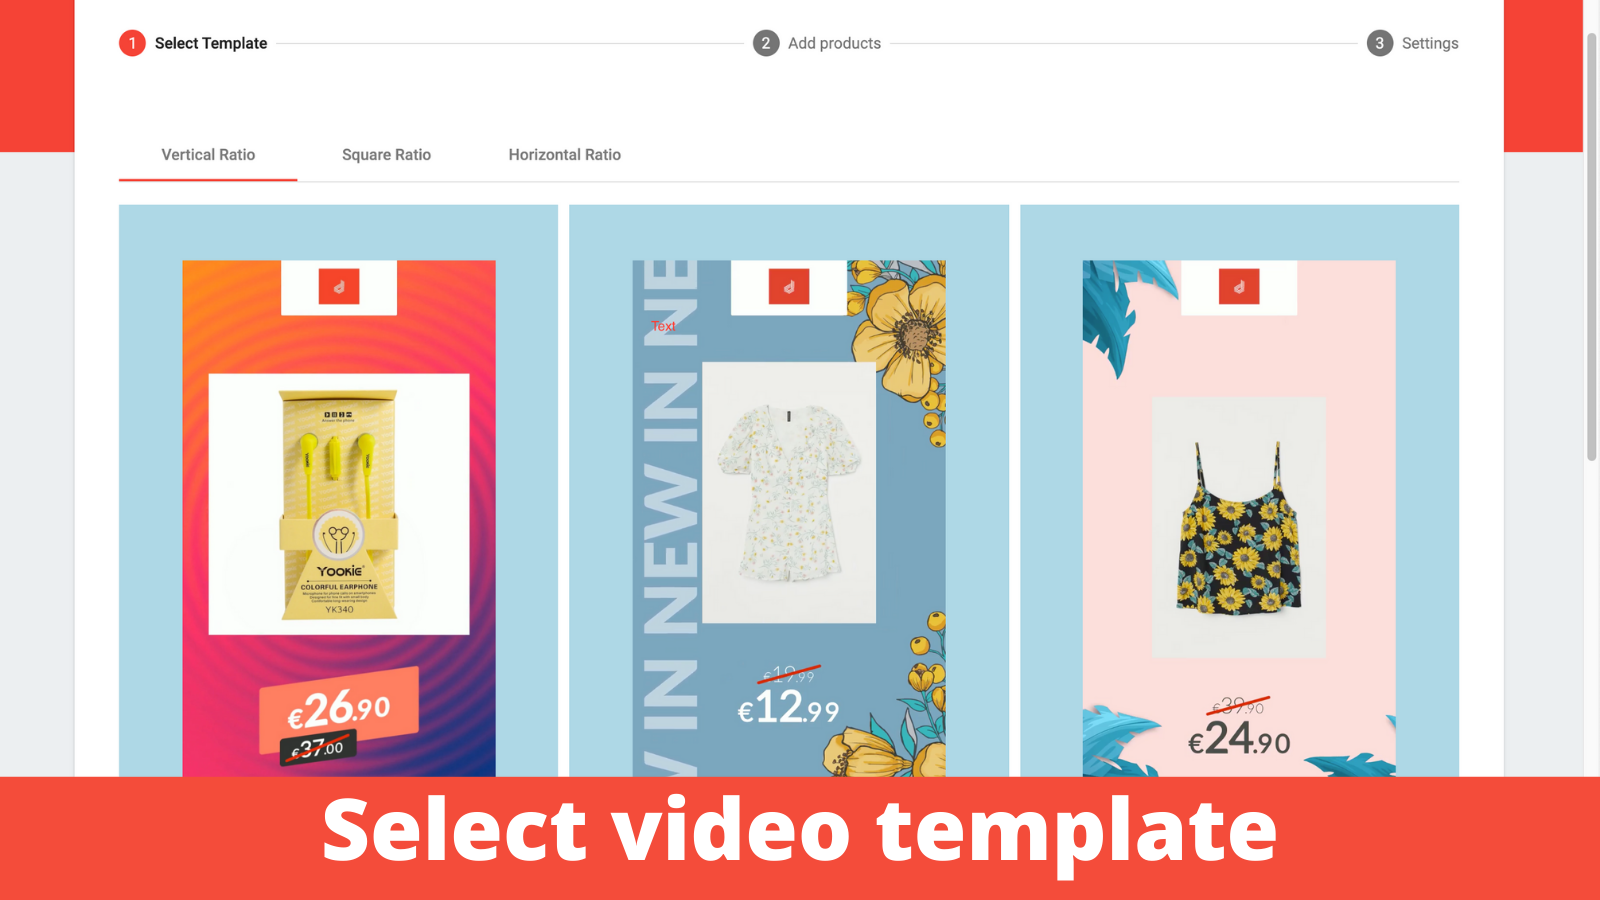 Select Video Template